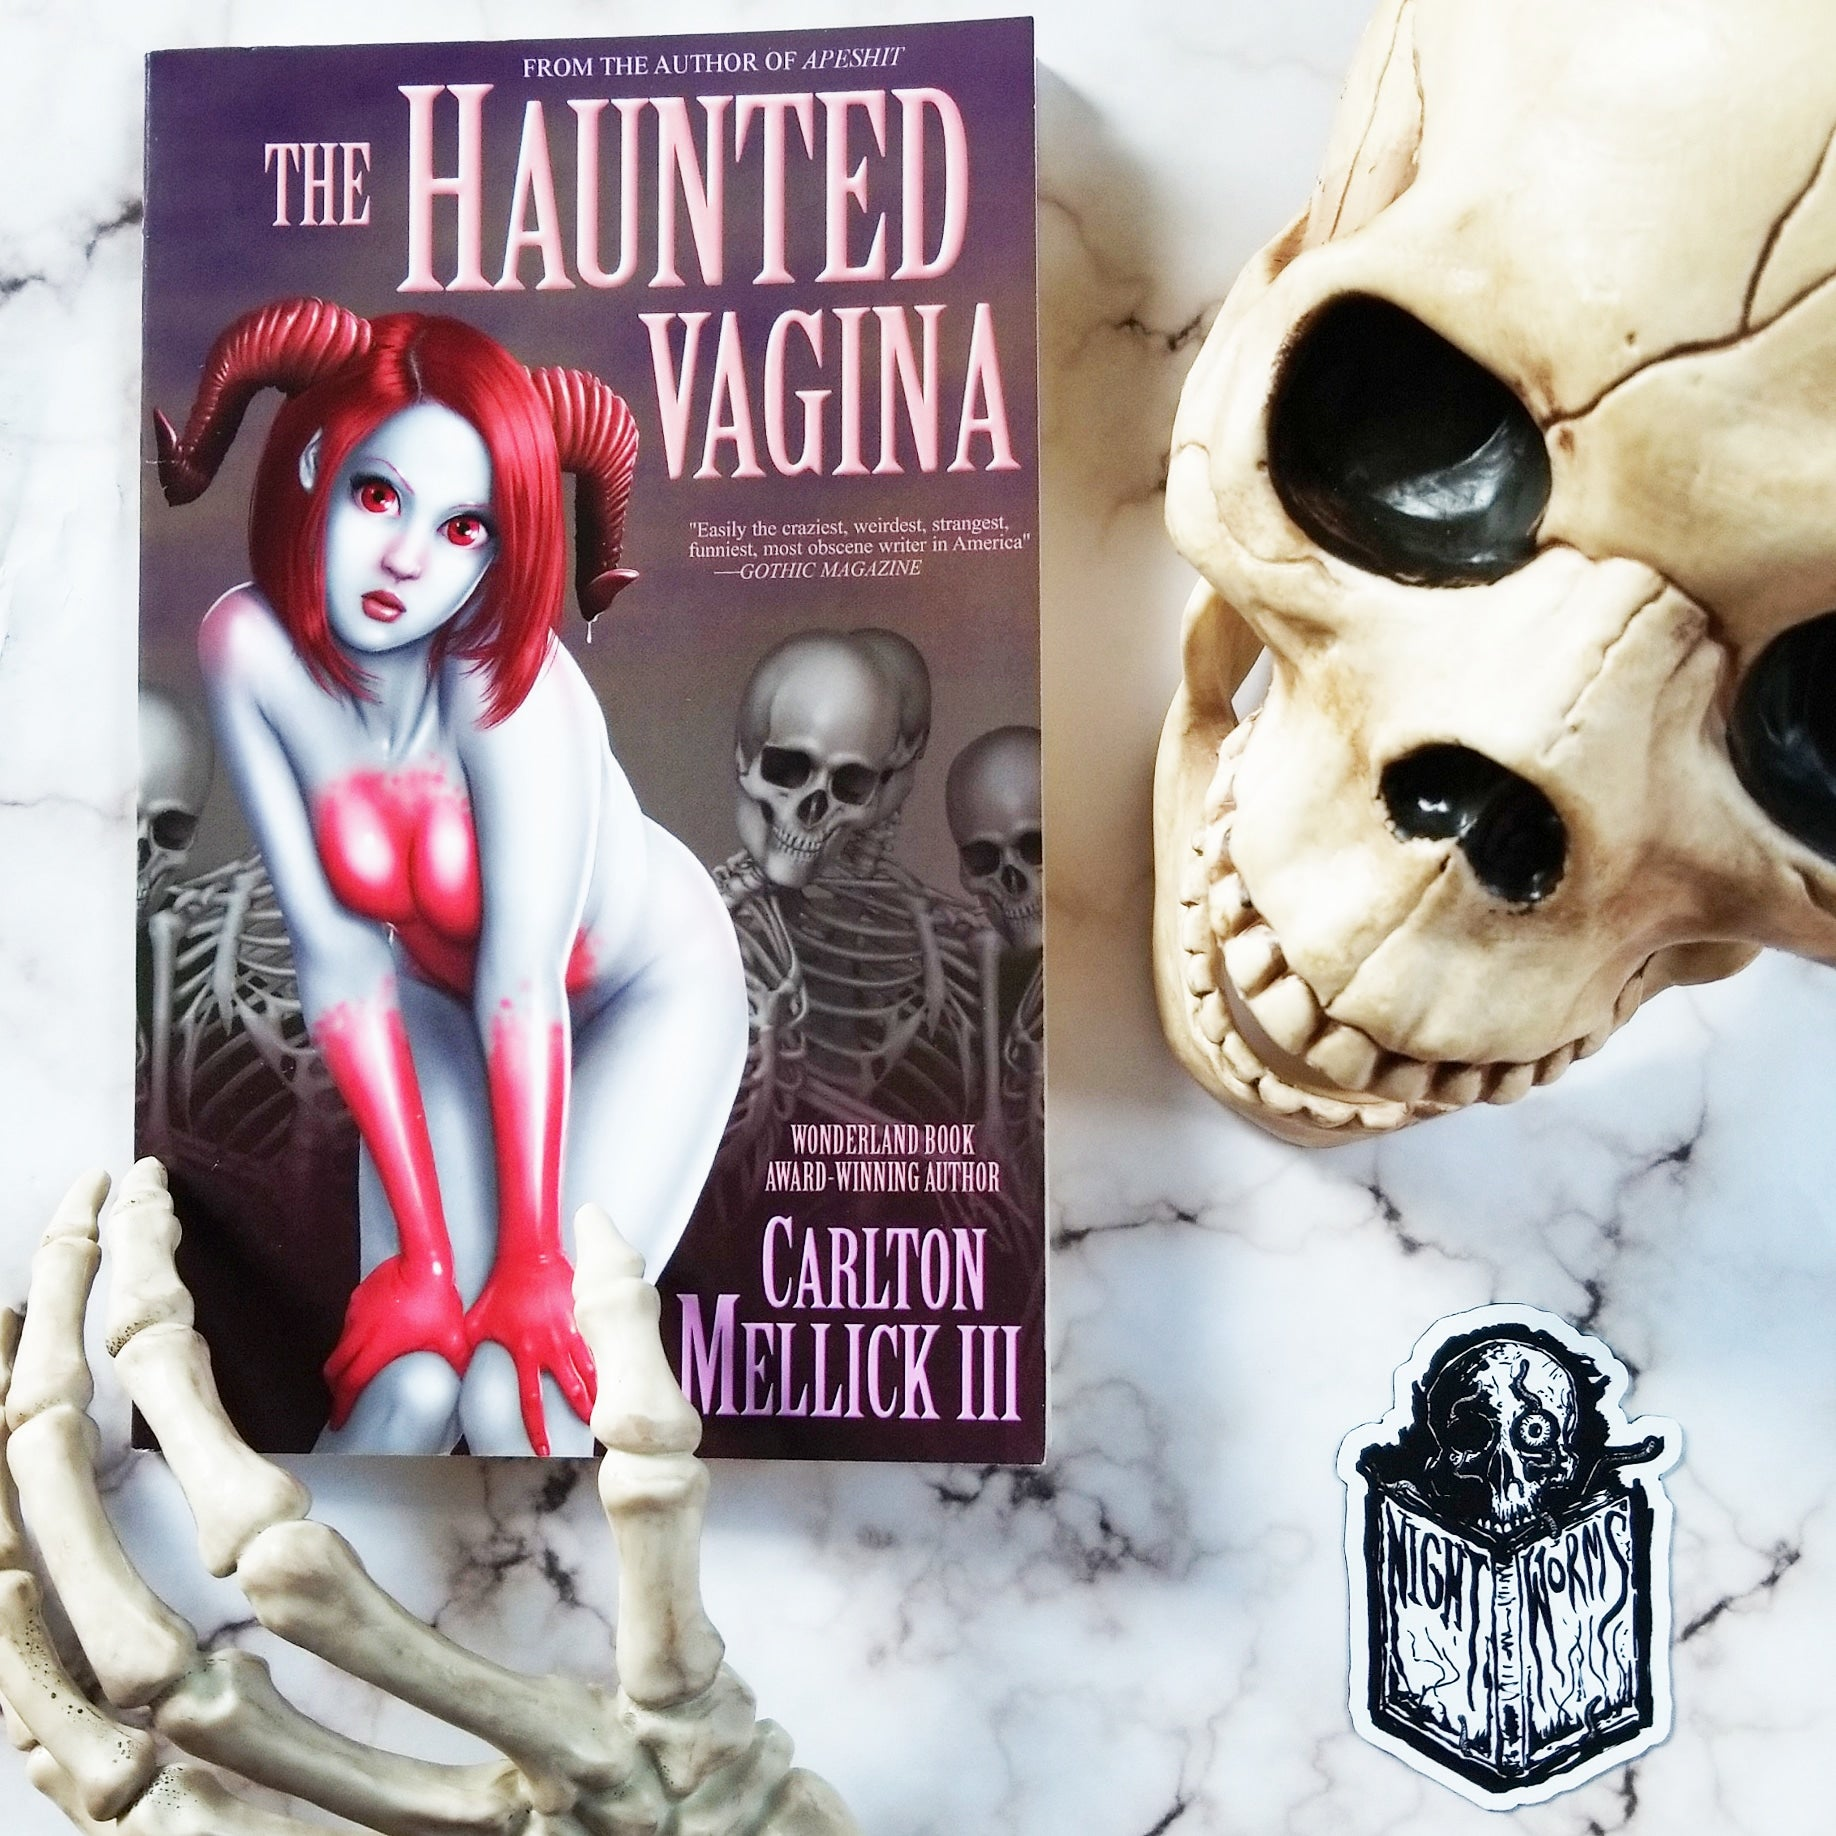 Alex Pearson's Offbeat Horror Review: The Haunted Vagina by Carlton Mellick III